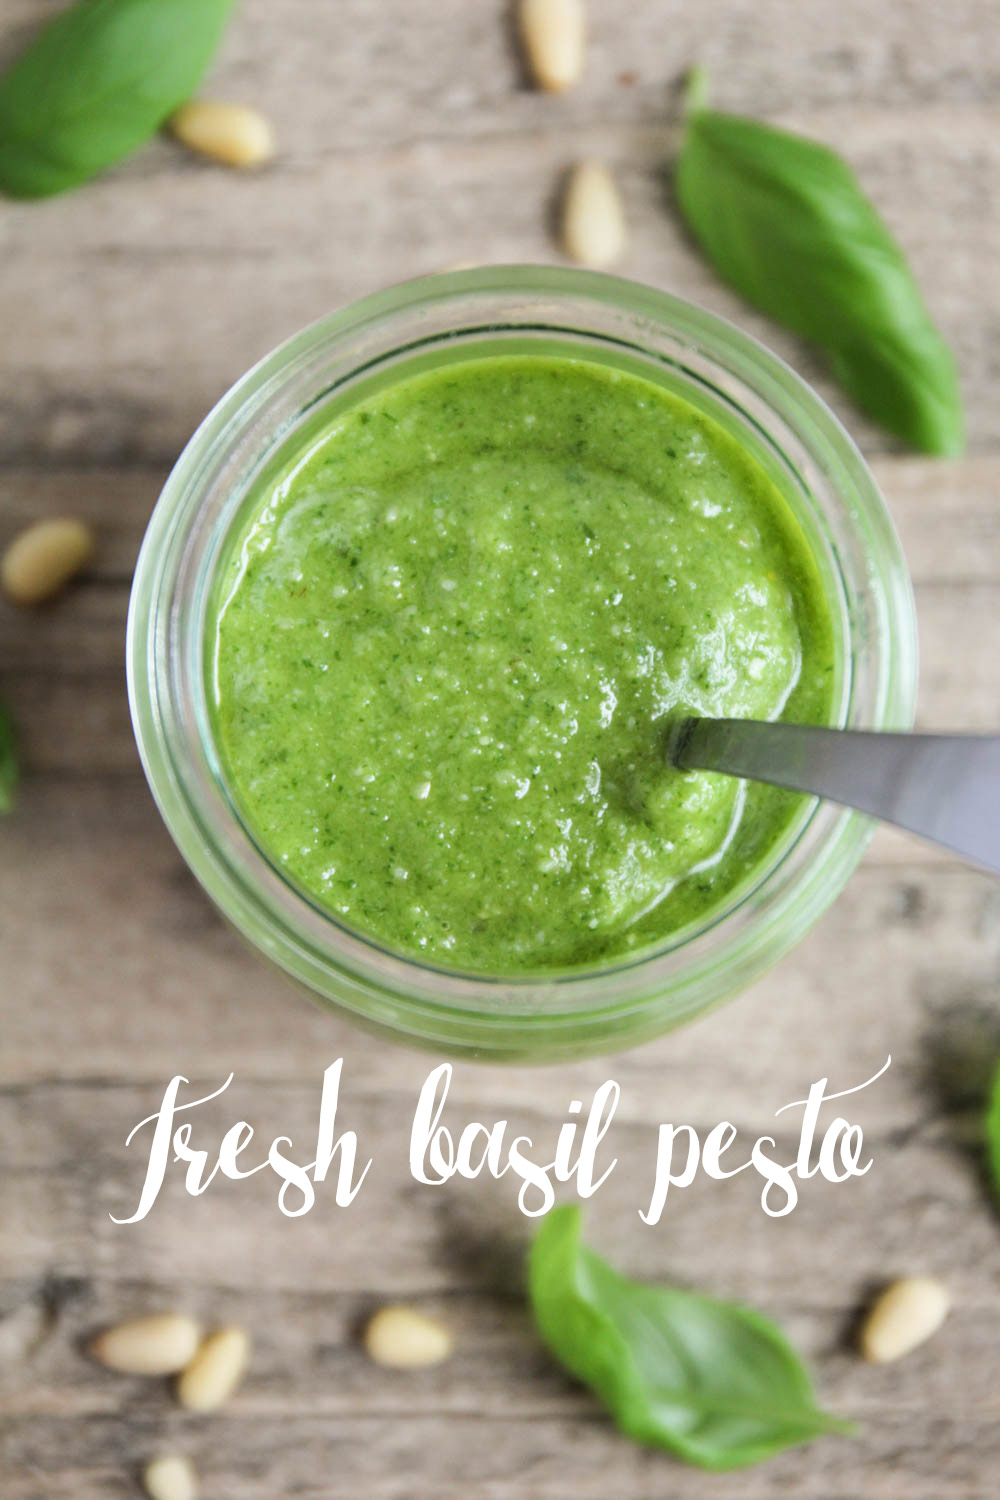 This fresh basil pesto is made with only five ingredients and is so flavorful and delicious!